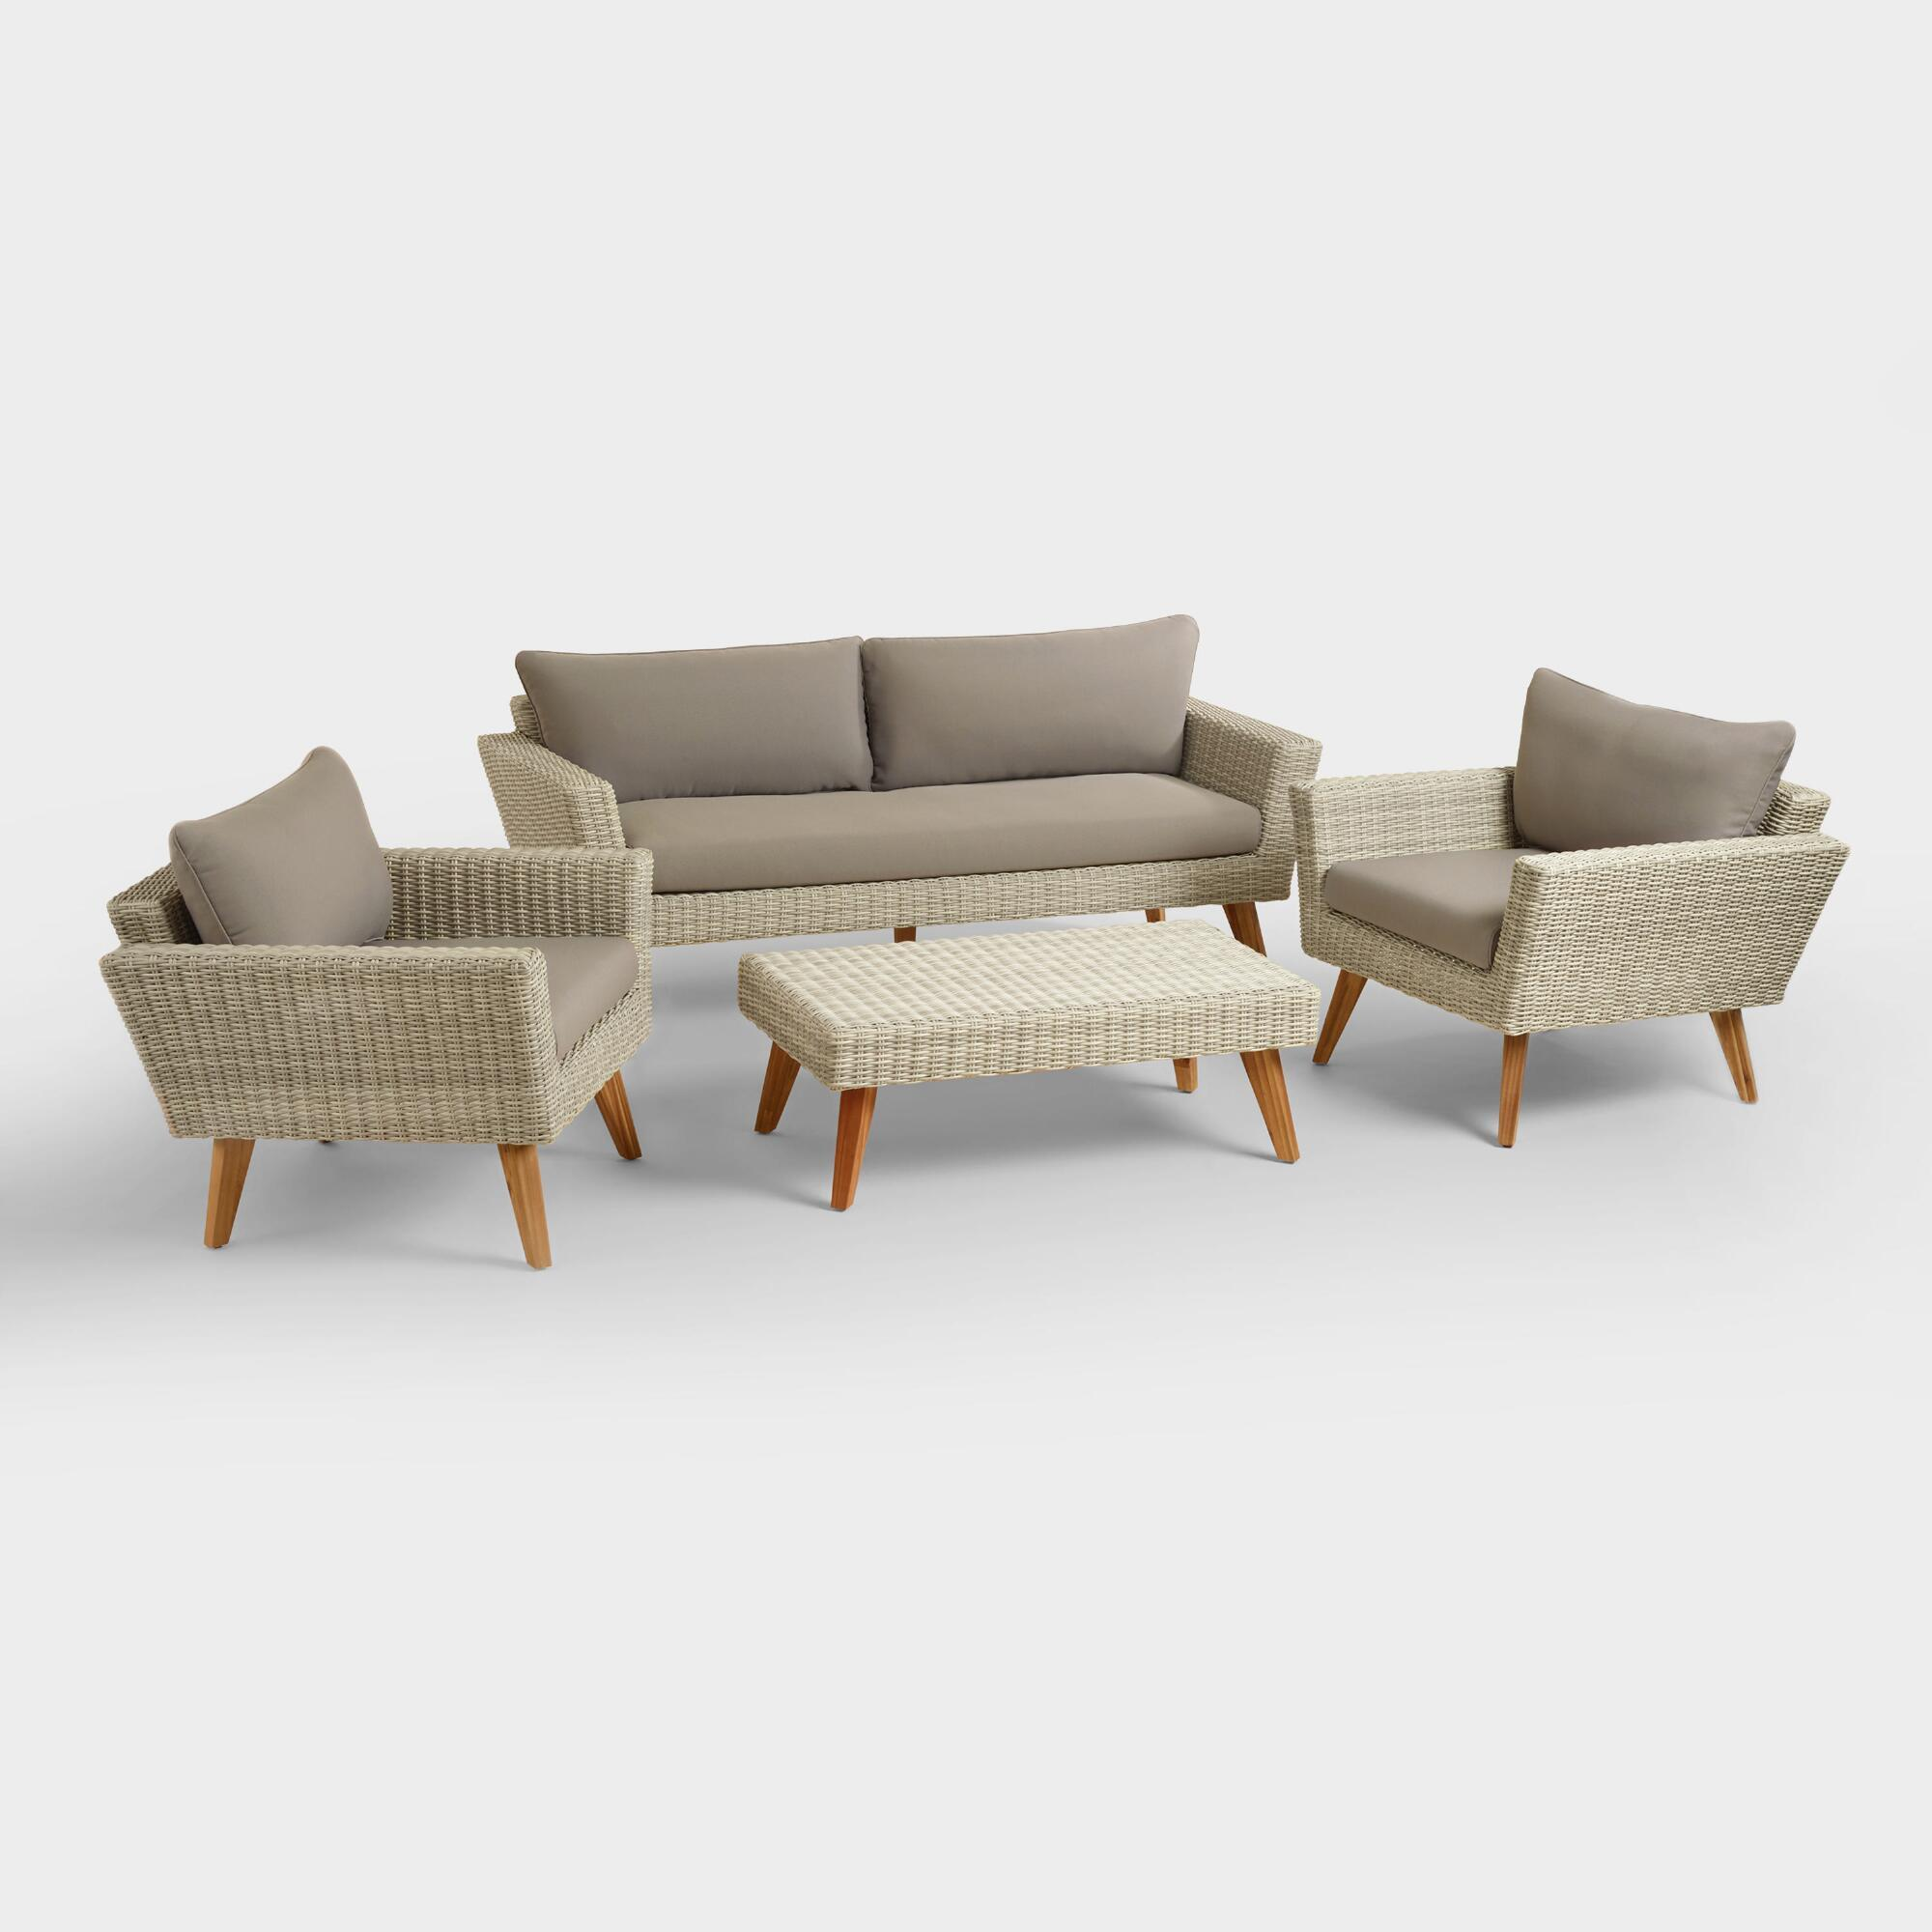 Marina Del Ray Outdoor Patio Occasional Collection by World Market Cost Plus World Market